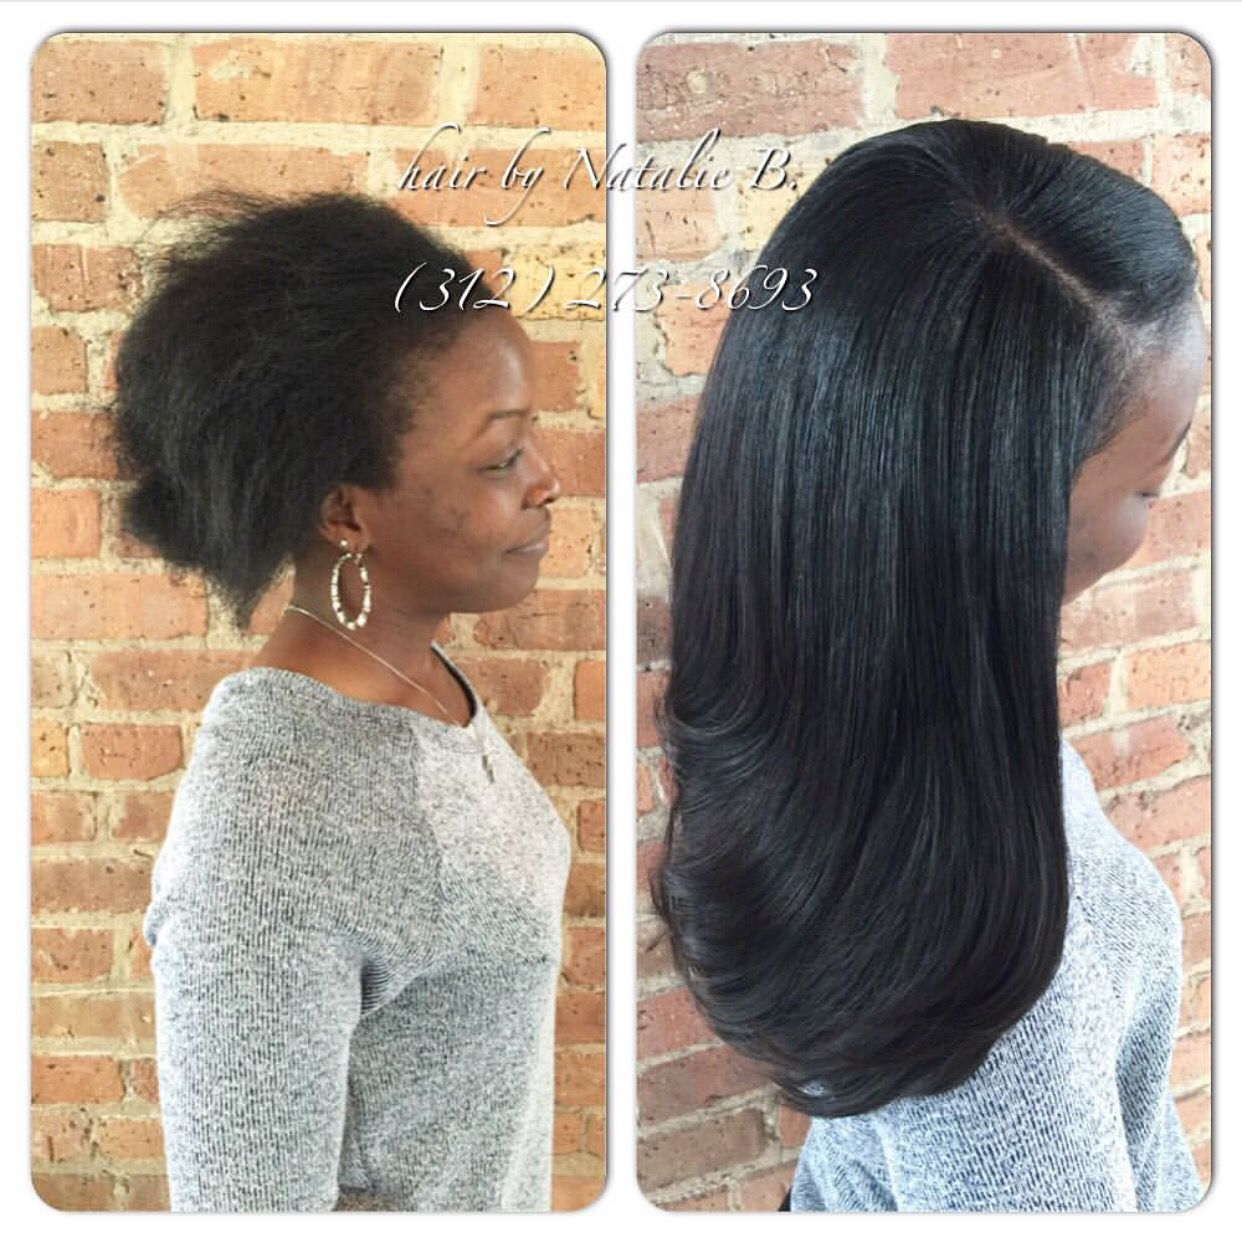 Miraculous Sew In For Teens Google Search Cute Pinterest Sew Search Hairstyles For Women Draintrainus